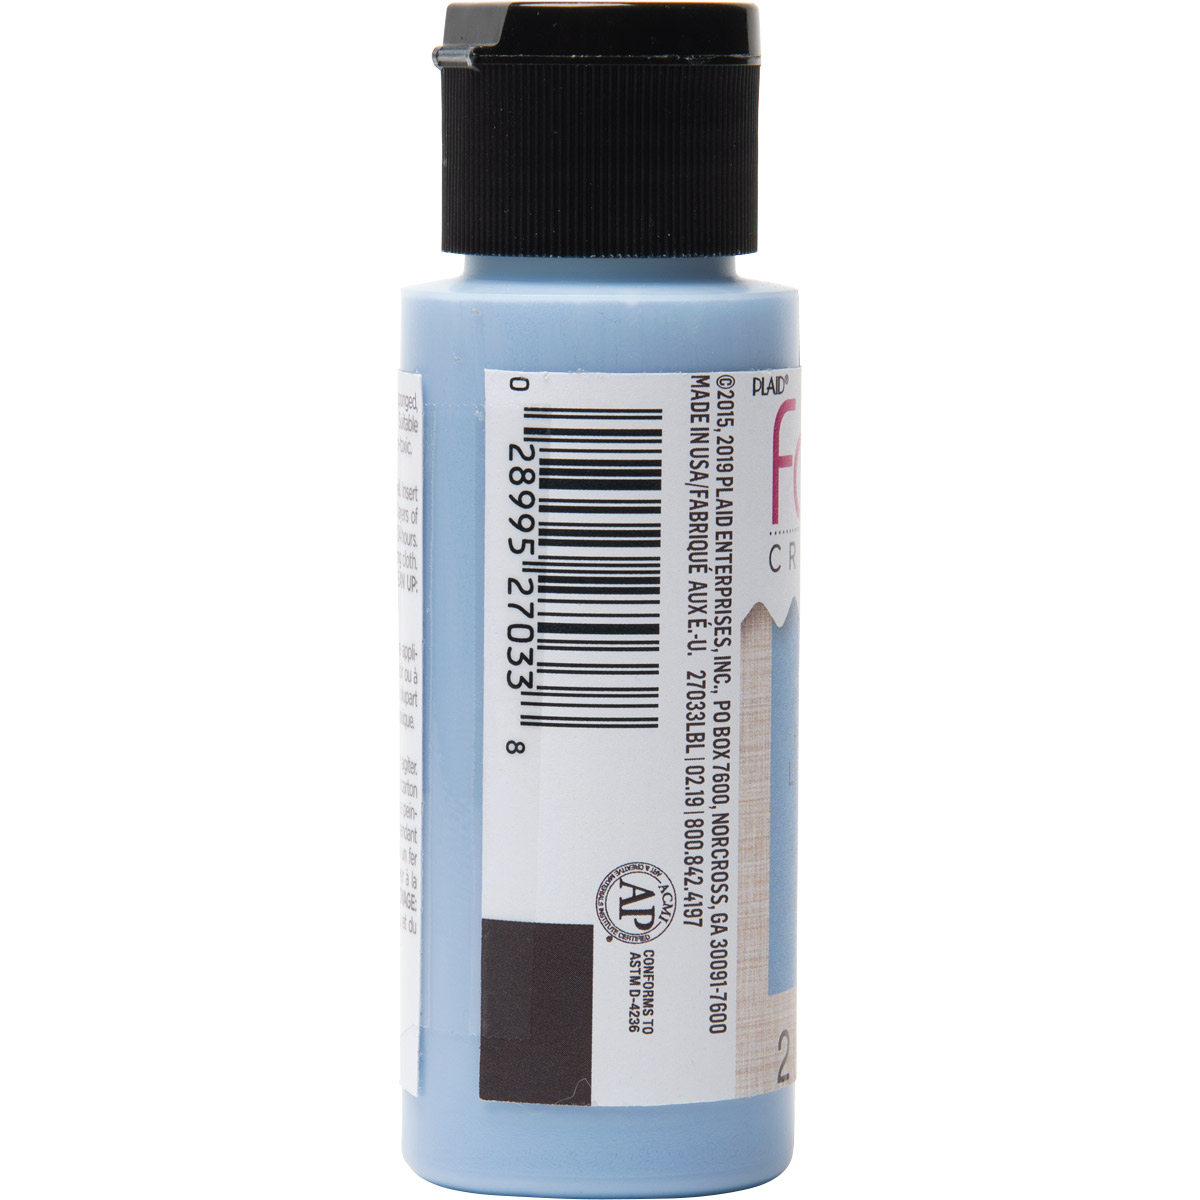 Fabric Creations™ Soft Fabric Inks - Pale Blue, 2 oz.